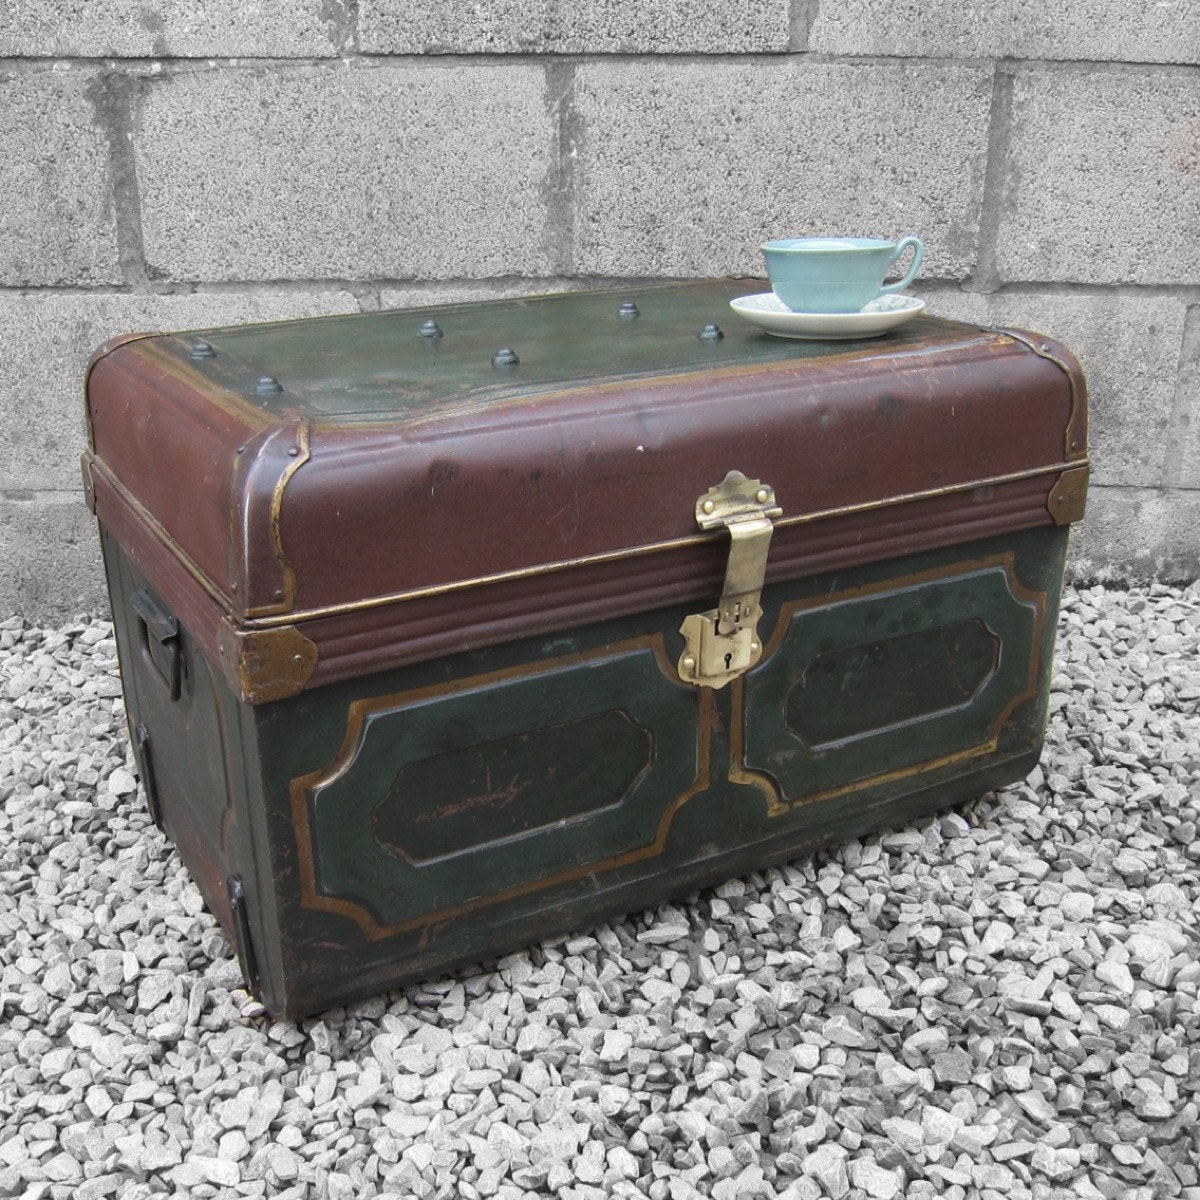 Vintage Industrial 1930s Old Steel Travel Trunk Chest Box Perfect Coffee Table Storage Haute